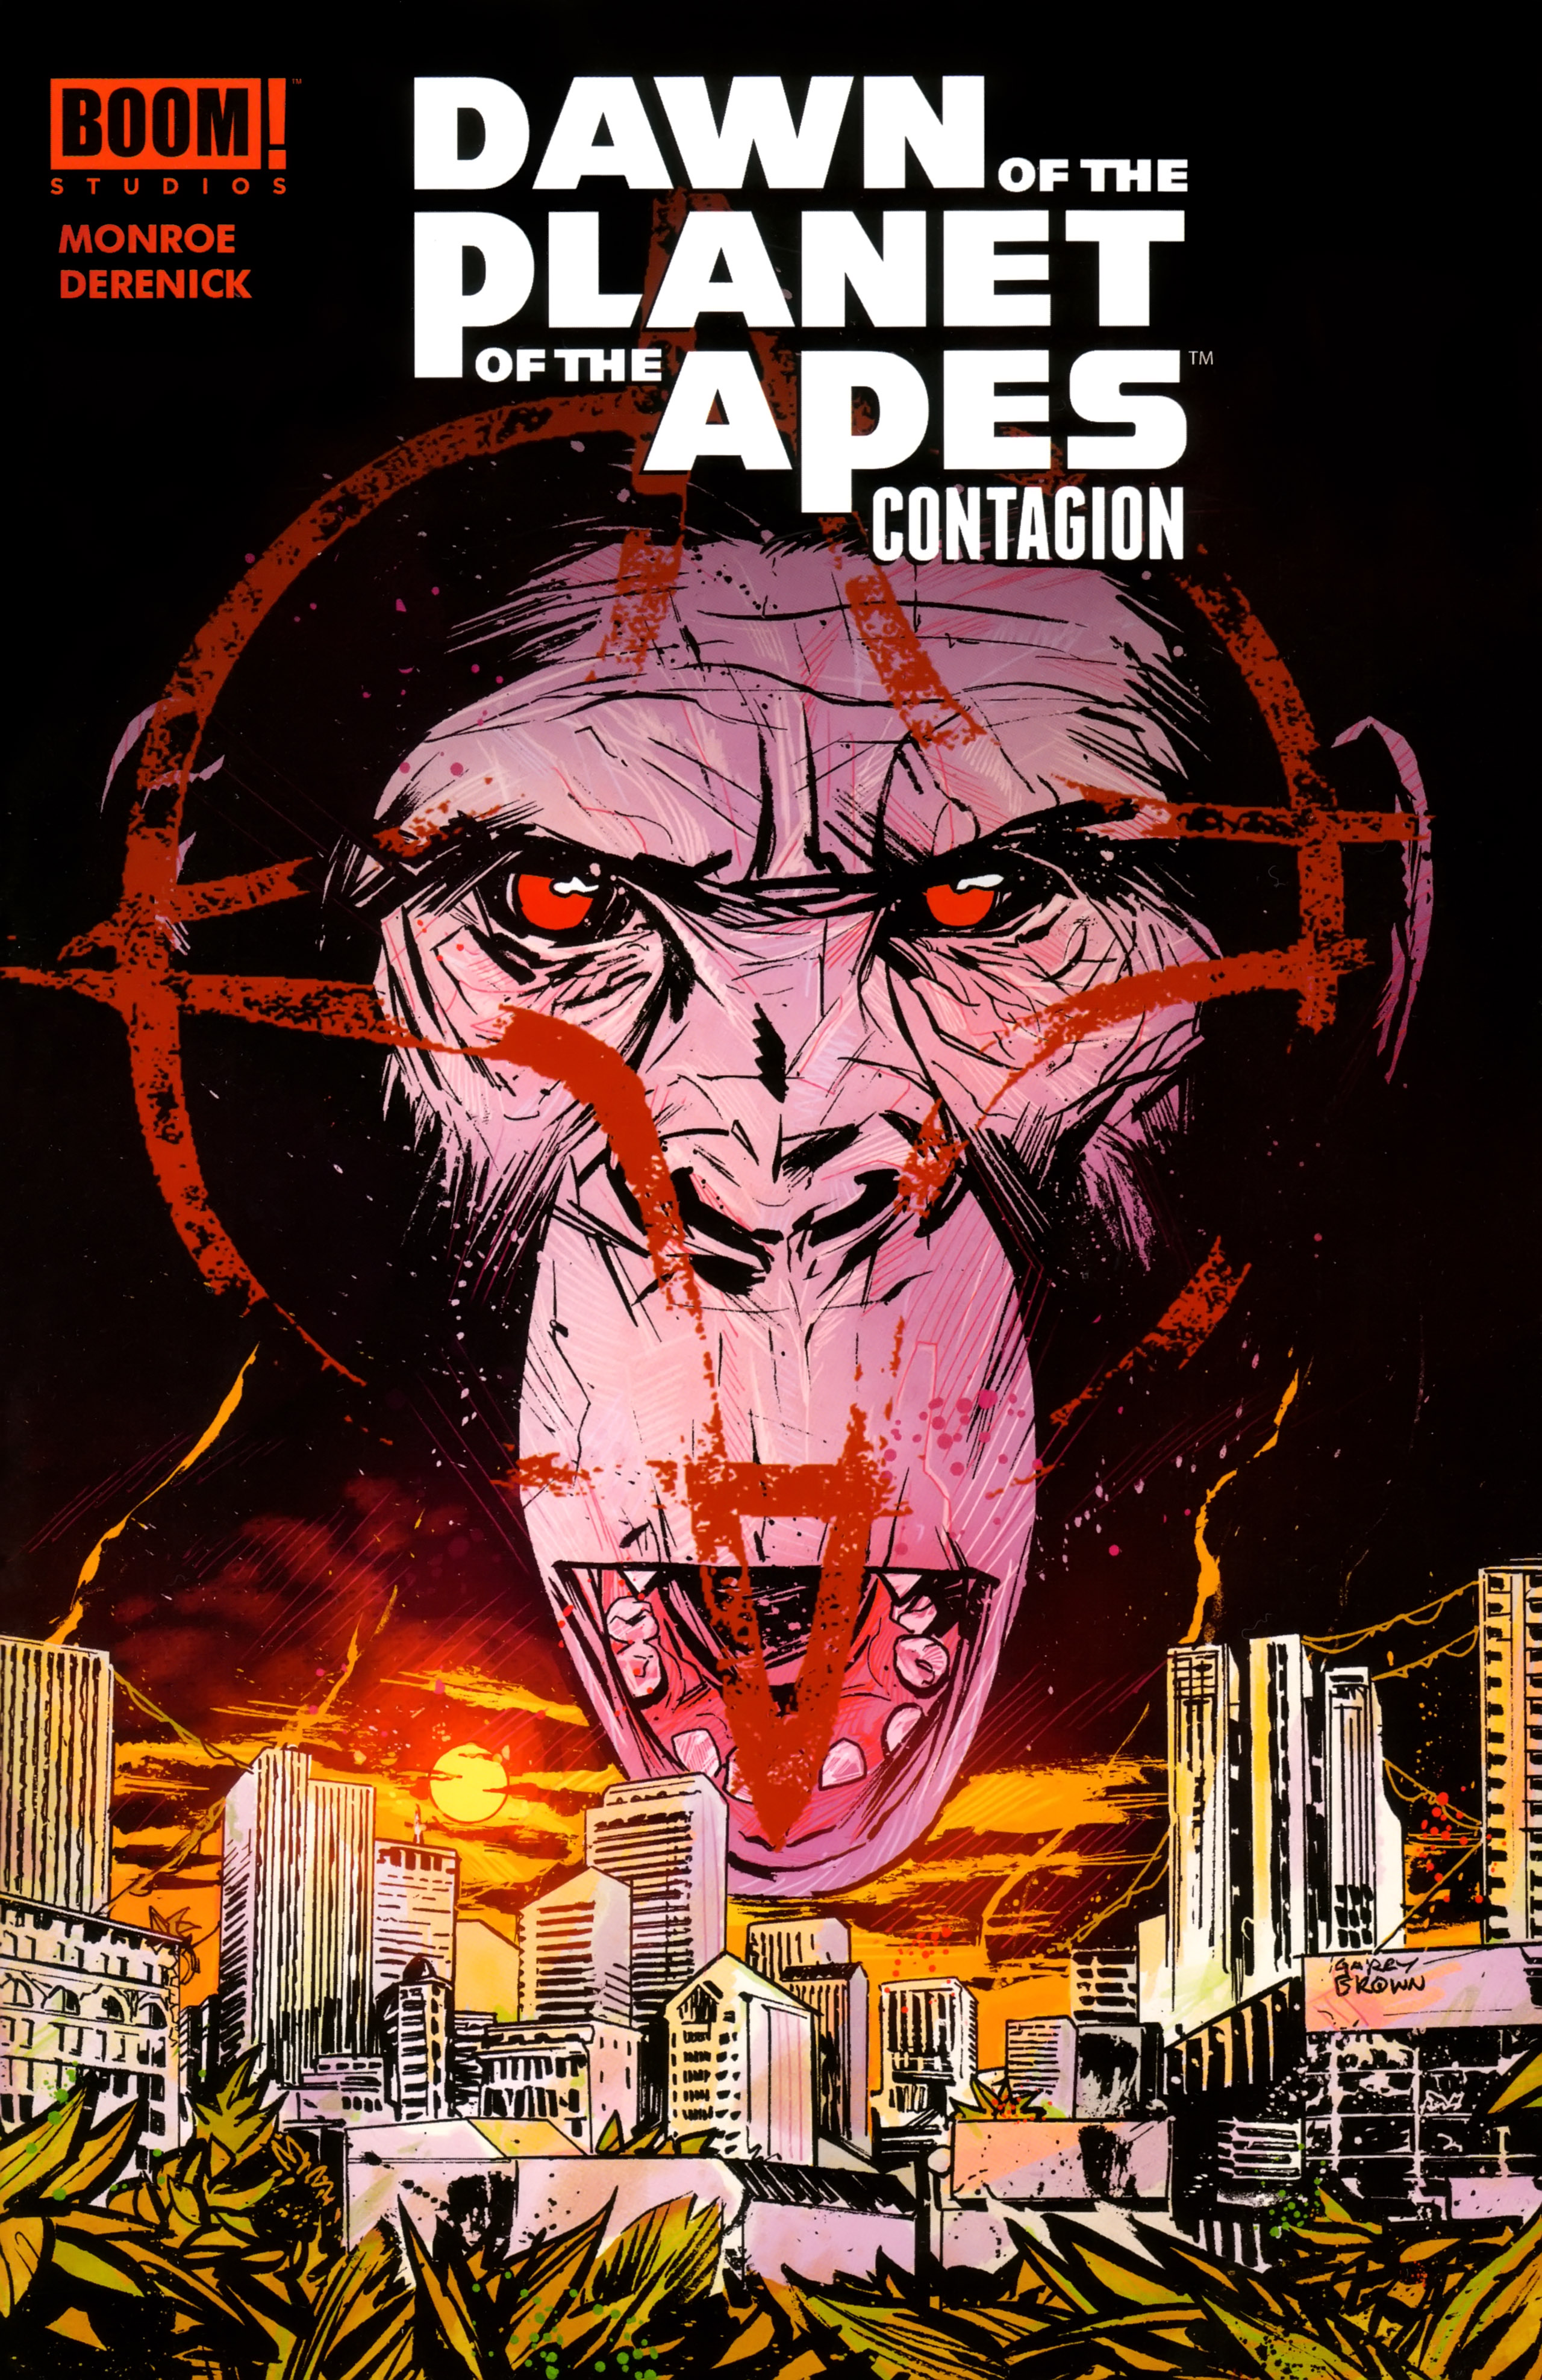 Read online Dawn of the Planet of the Apes:Contagion comic -  Issue # Full - 1